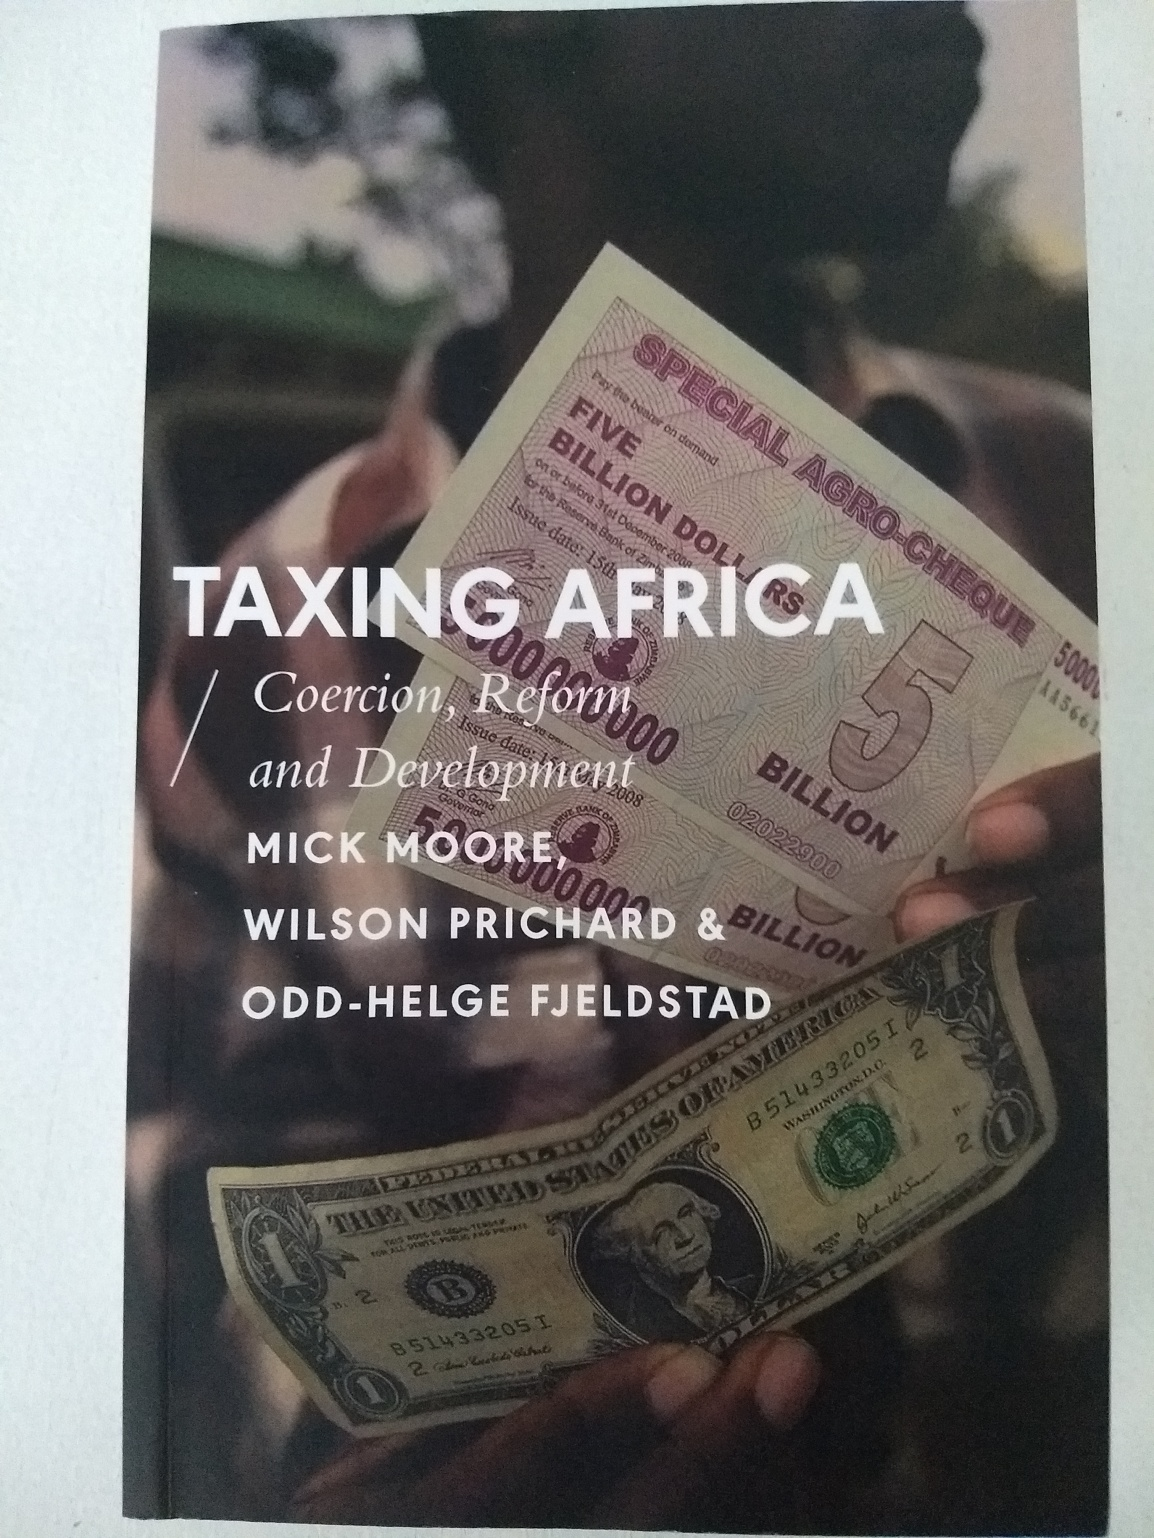 review of TAXING AFRICA